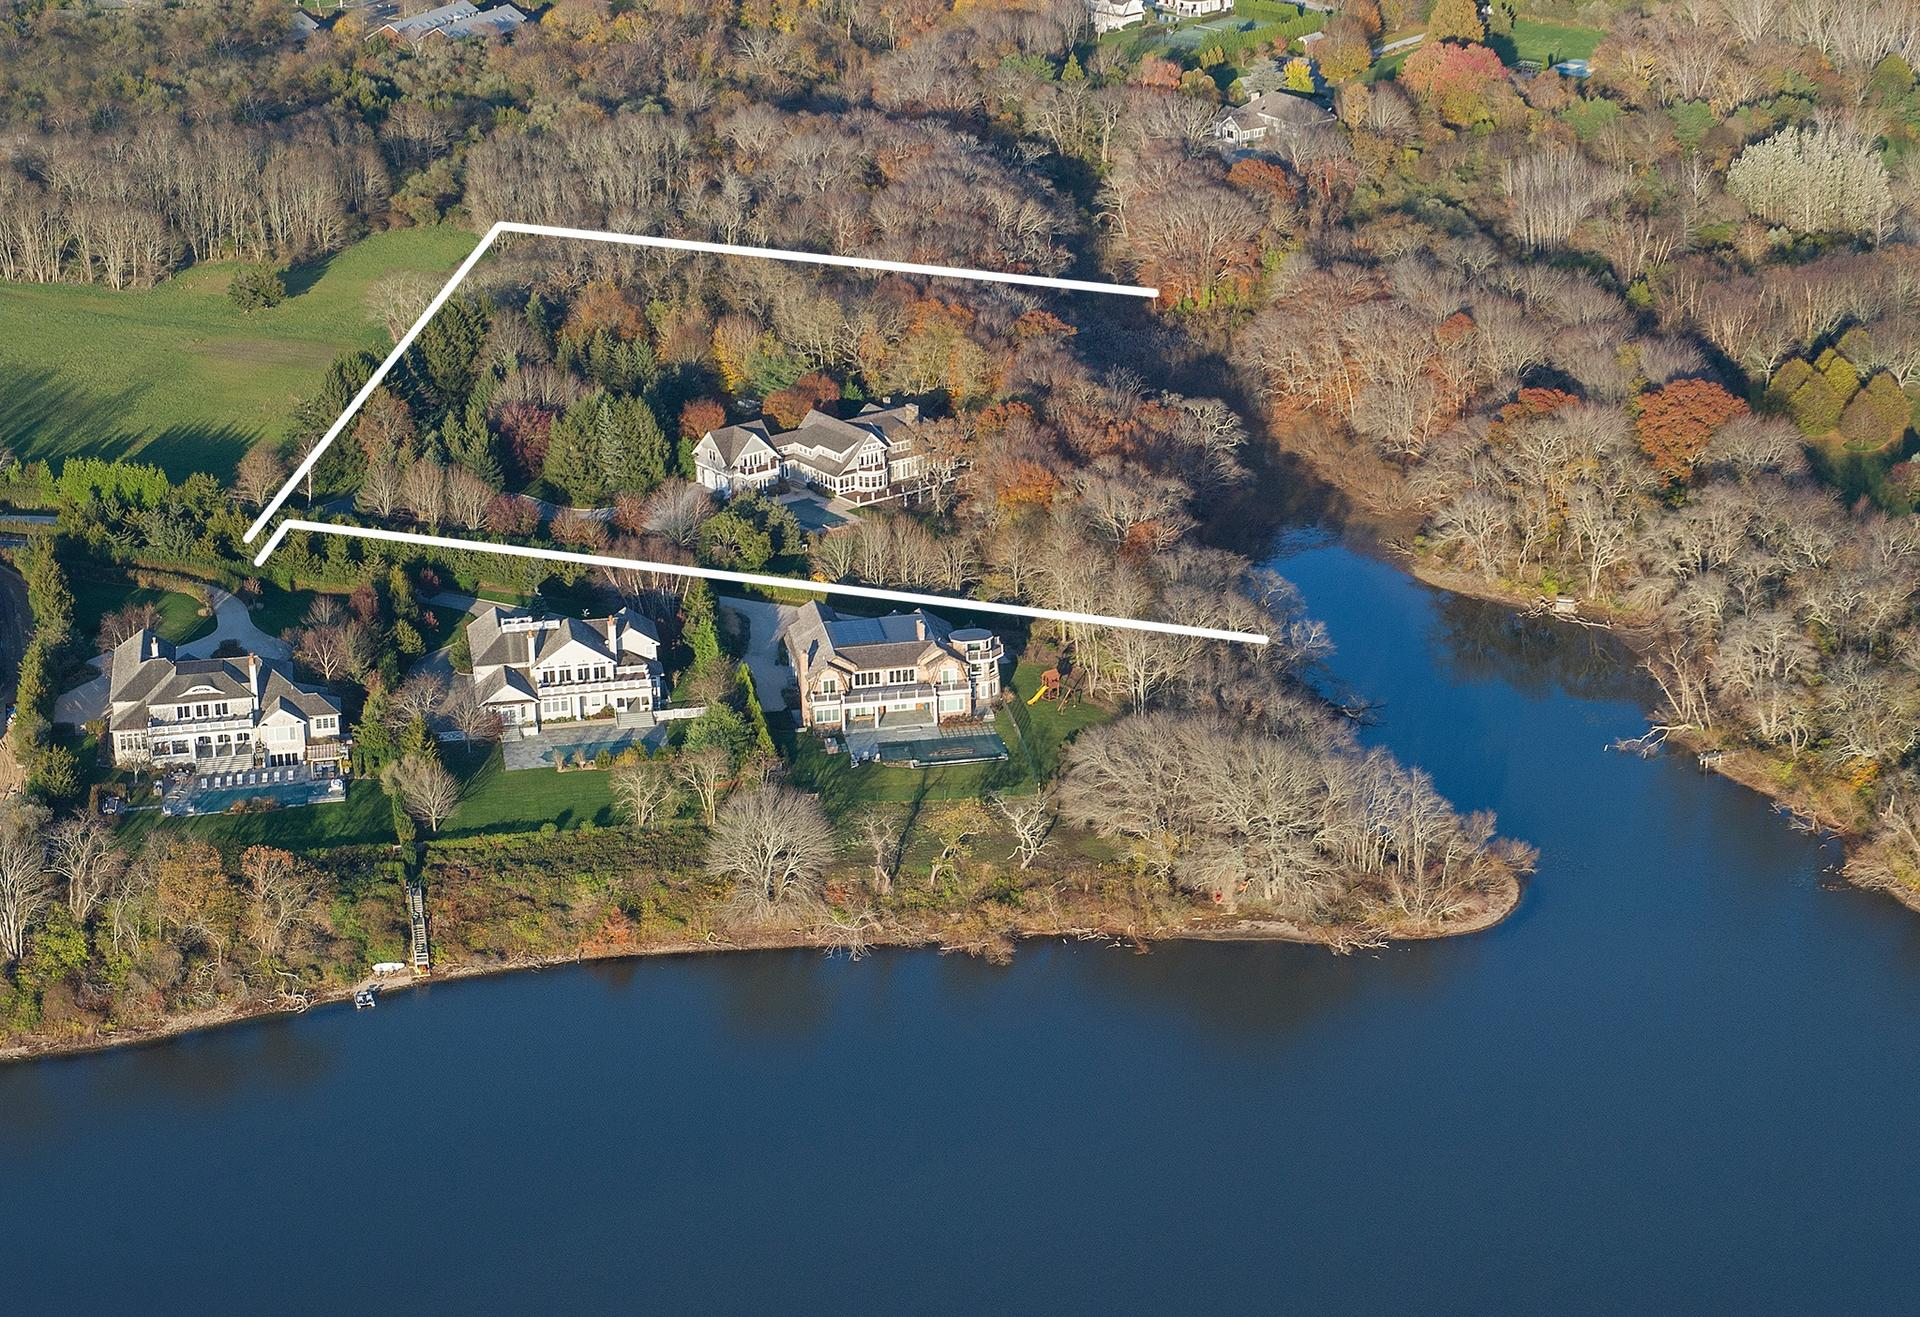 Single Family Home for Sale at Bridgehampton South Of Highway Waterfront Estate 23 Kellis Pond Way, Bridgehampton, New York